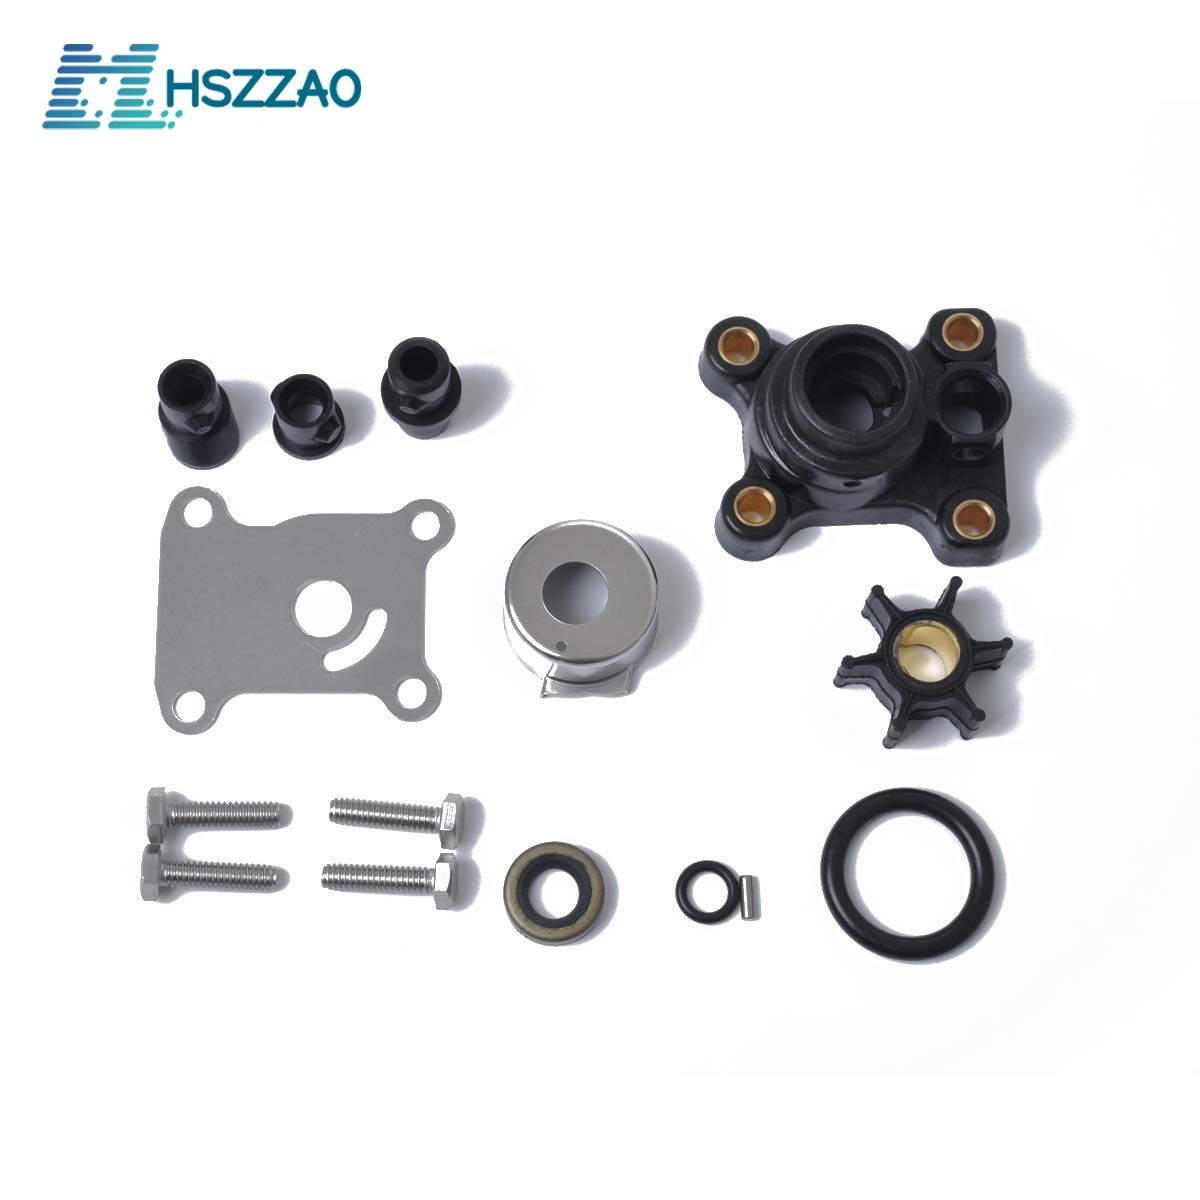 Impeller Water Pump 9.9hp & 15hp Repair Kit For Johnson/Evinrude 394711 by MHSZZAO